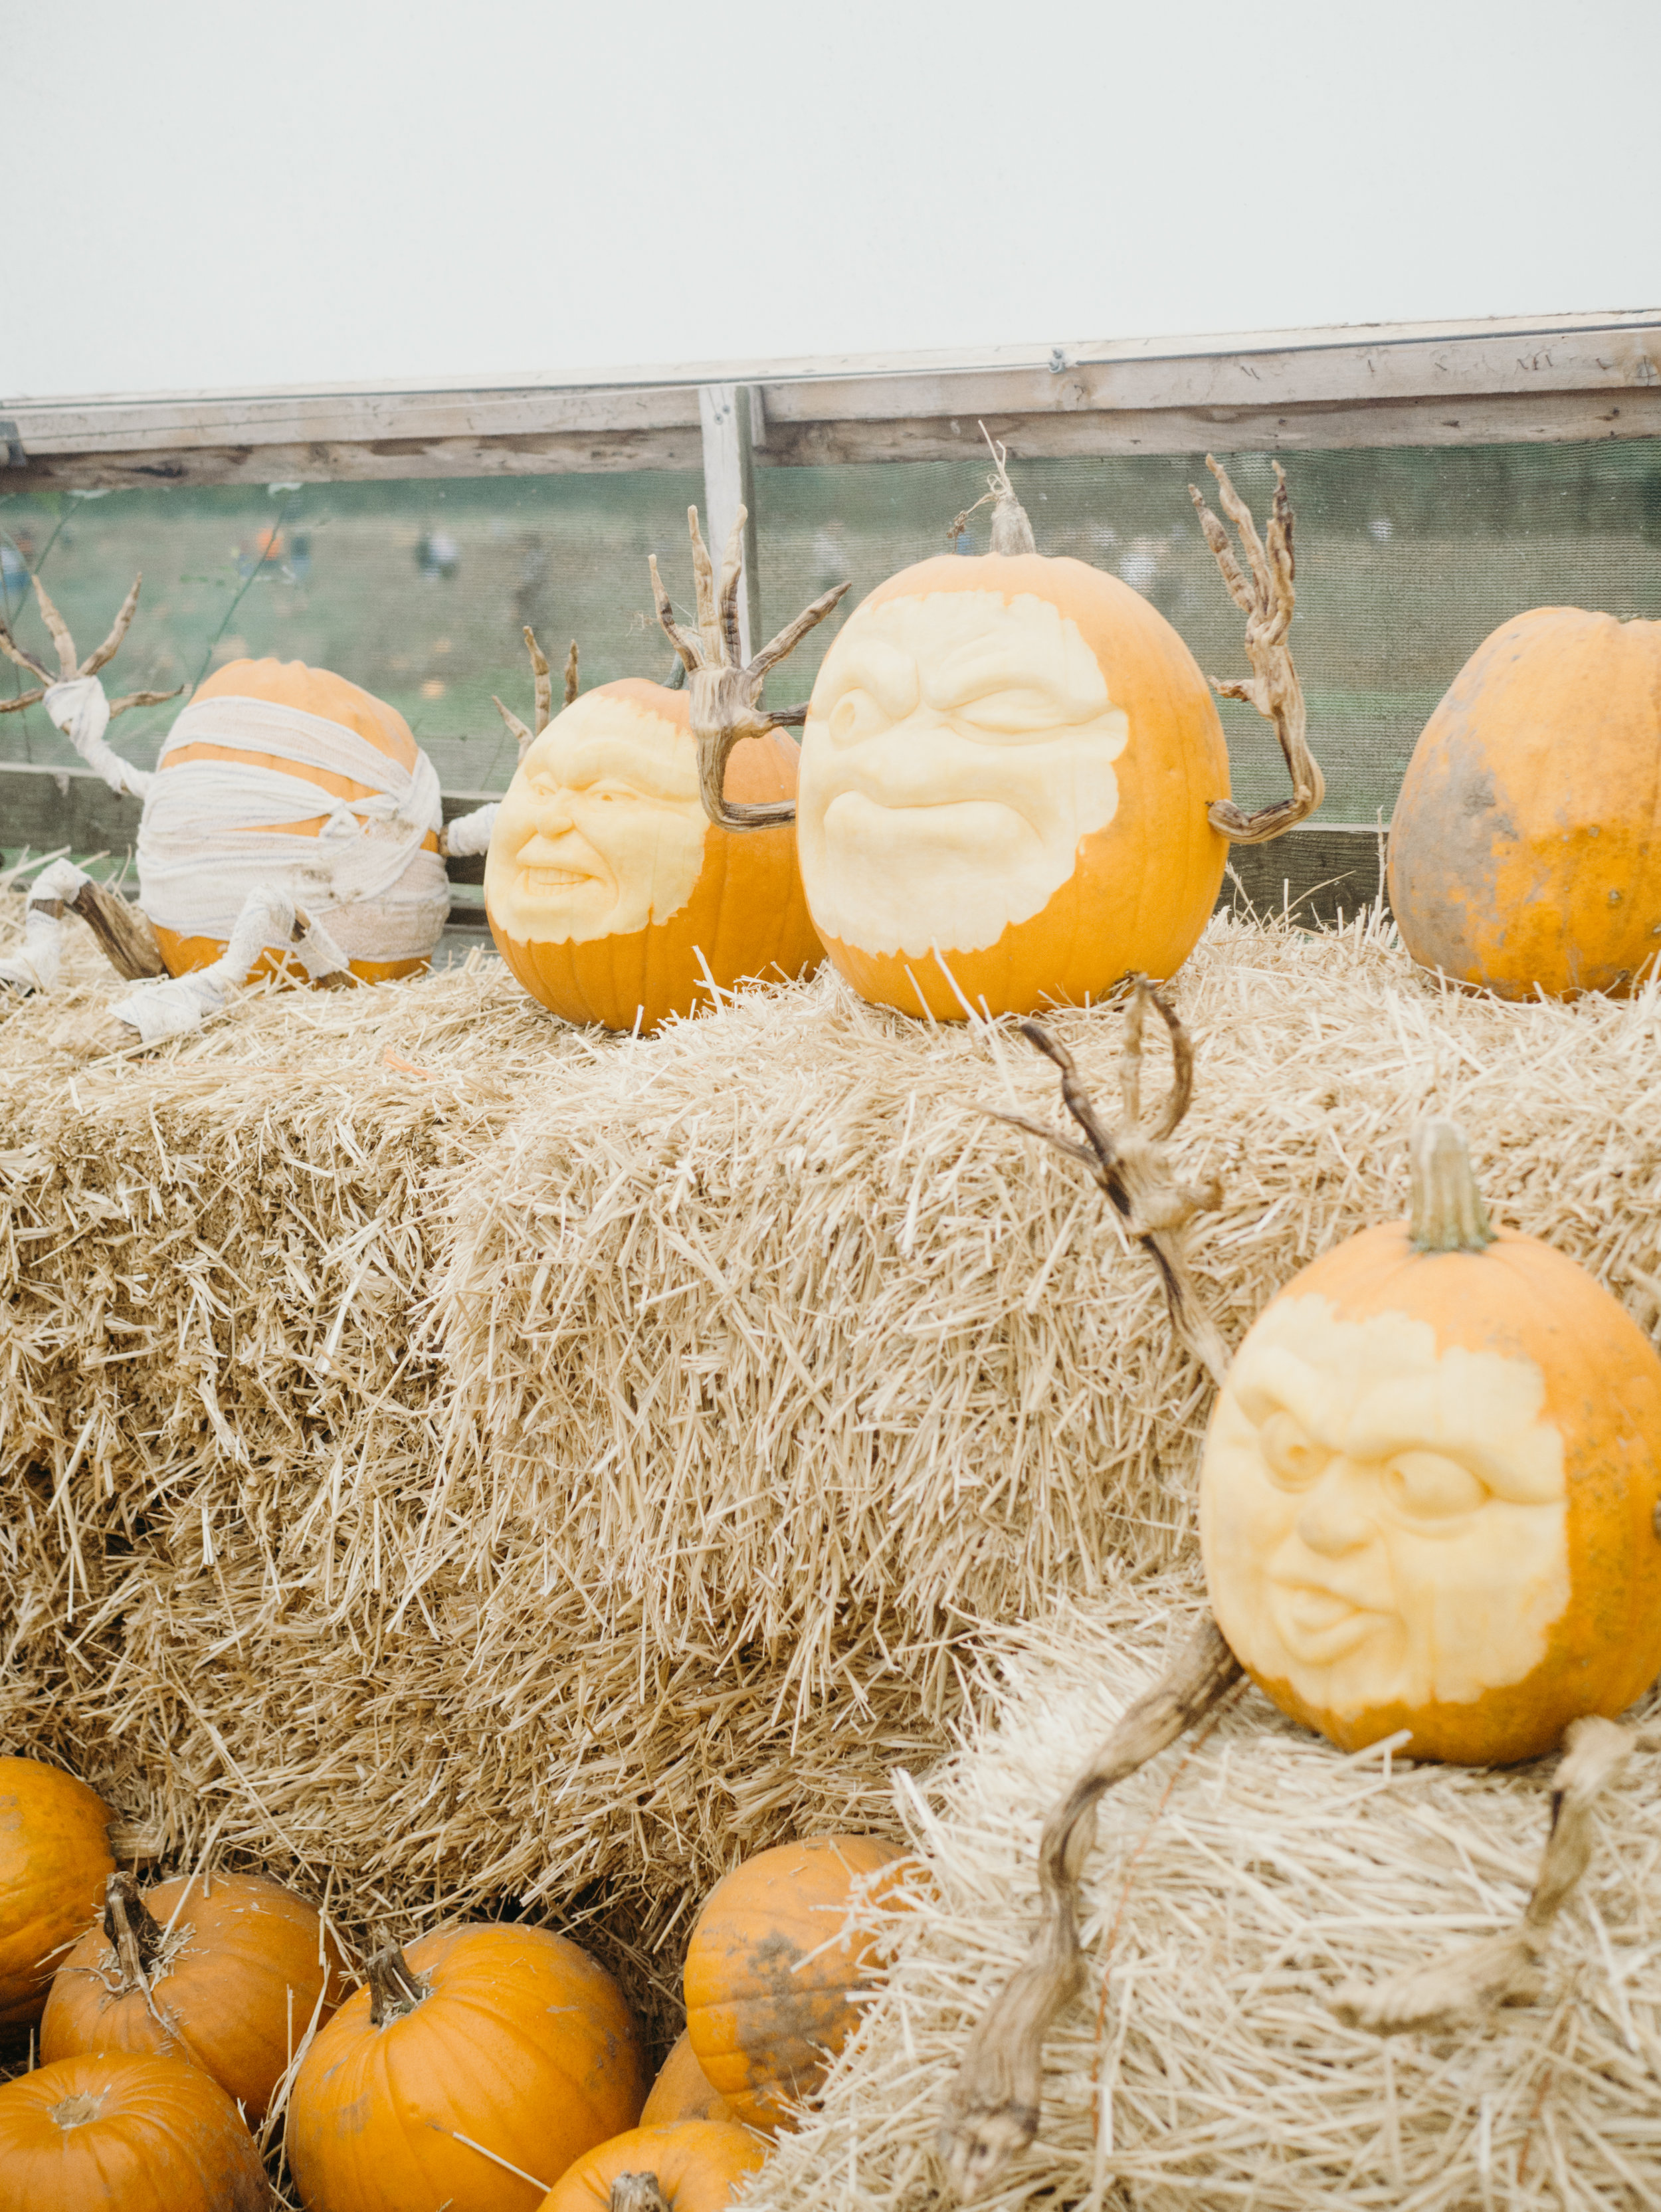 The Pumpkin Patch at Essington Farm